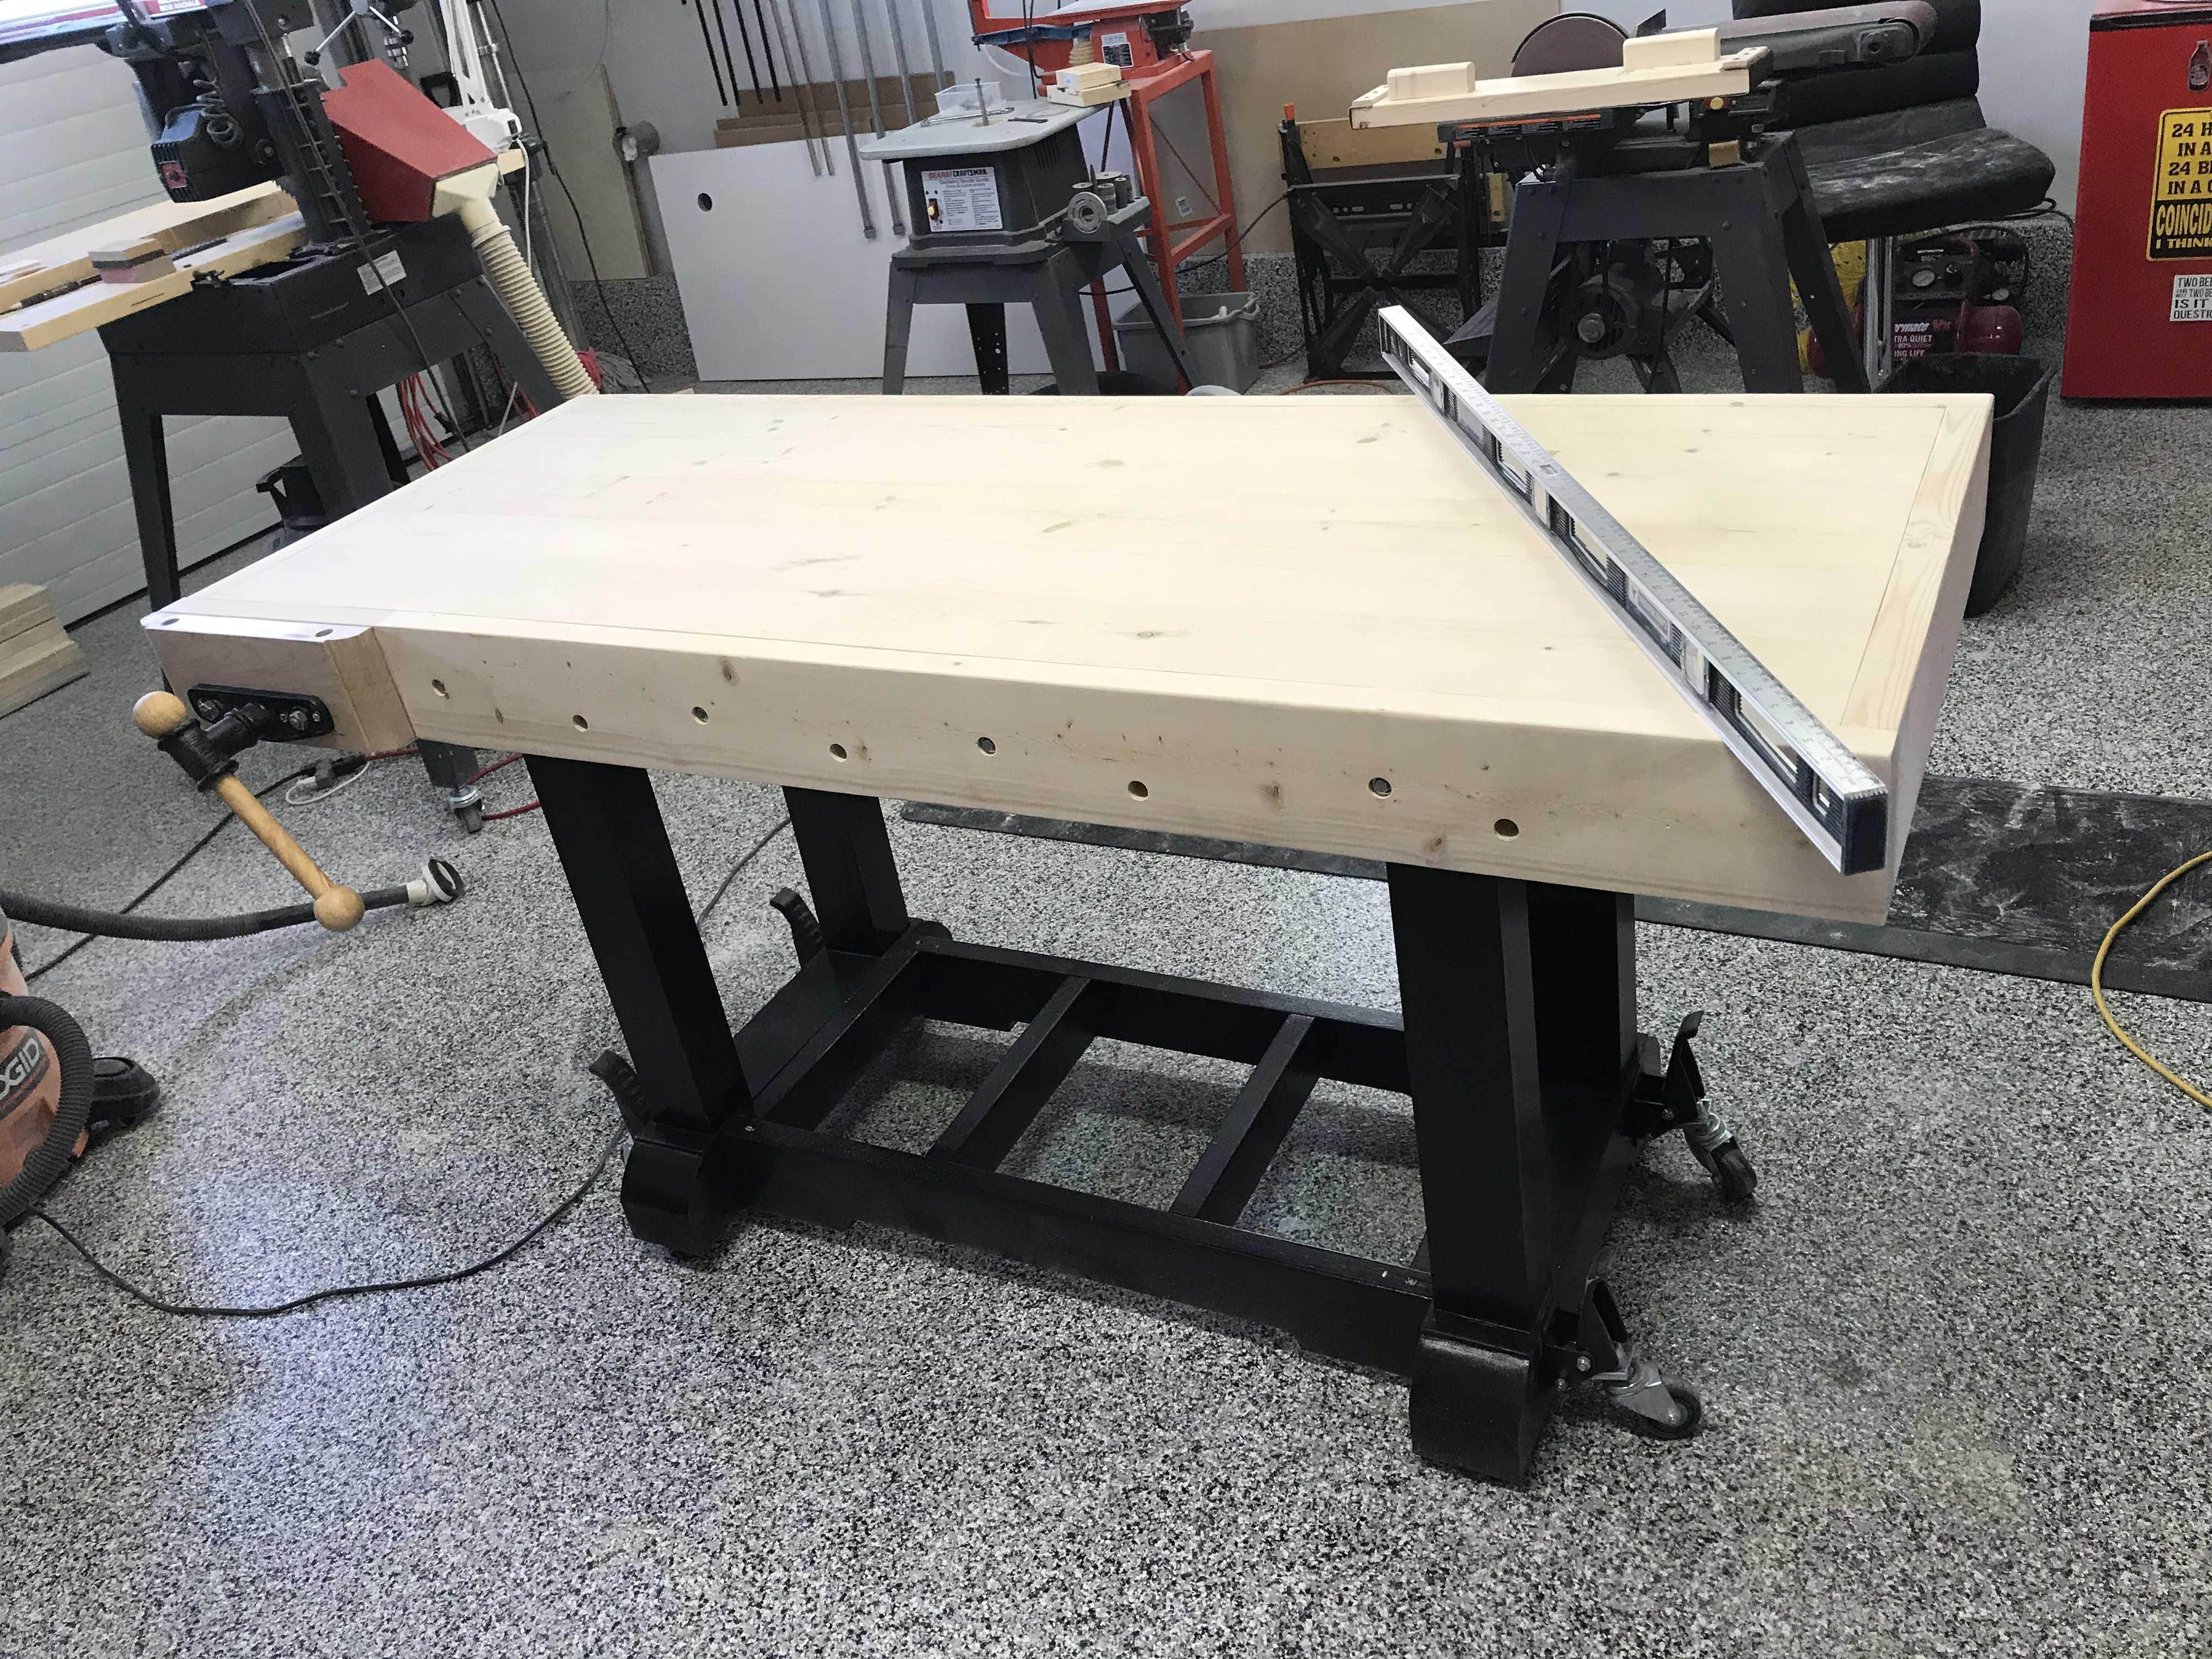 Pin By Davon Spexarth On Moxon Vise Woodworking Projects Workbench Drafting Desk